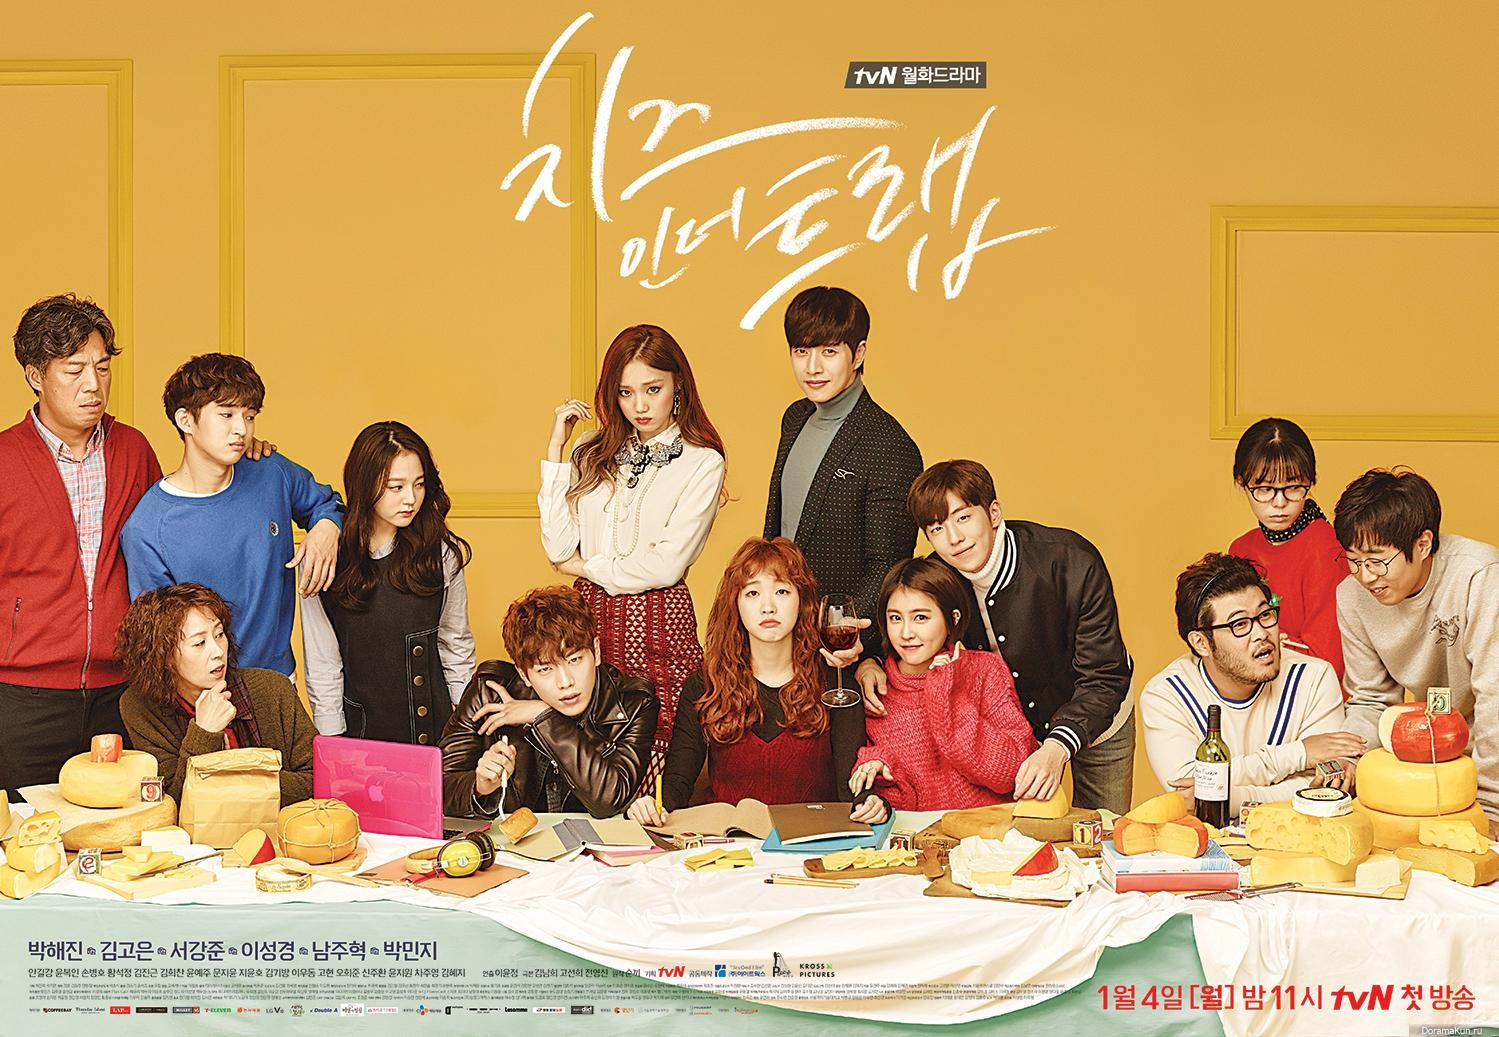 Сыр в мышеловке/Cheese in the trap (2016) - Страница 2 Cheese-in-the-Trap-Poster5-1499